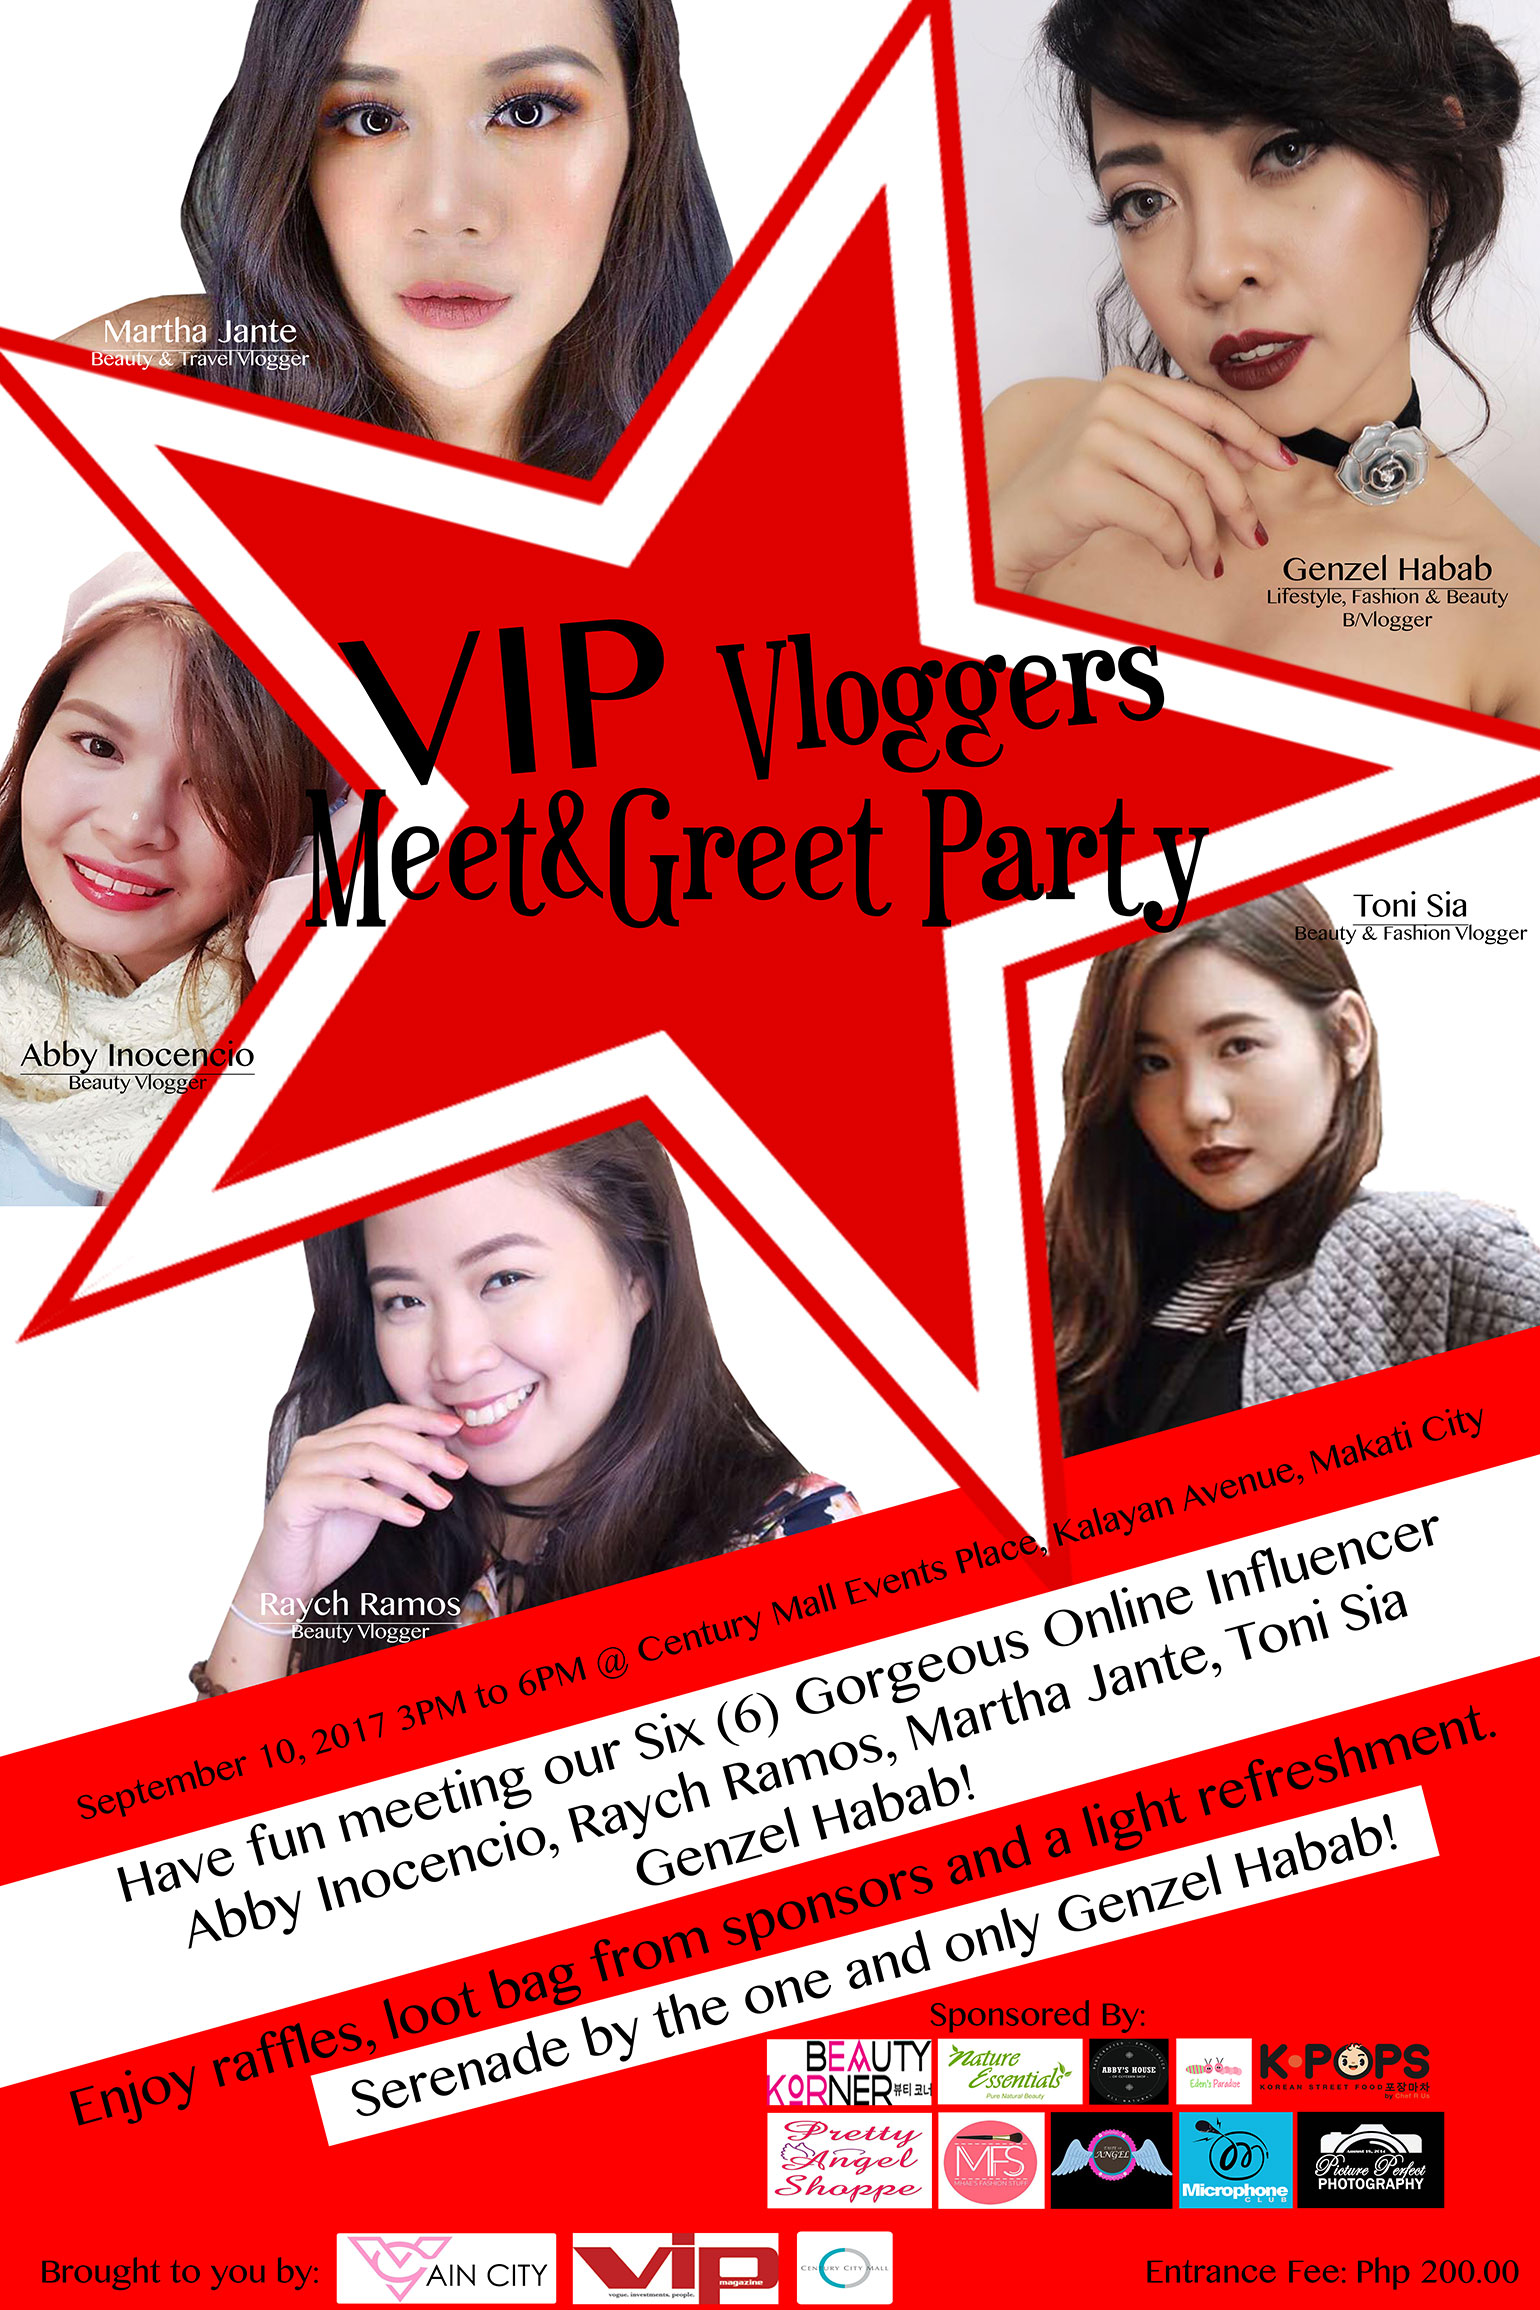 2 VIP Magazine - Vain City - VIP Vloggers Meet and Greet